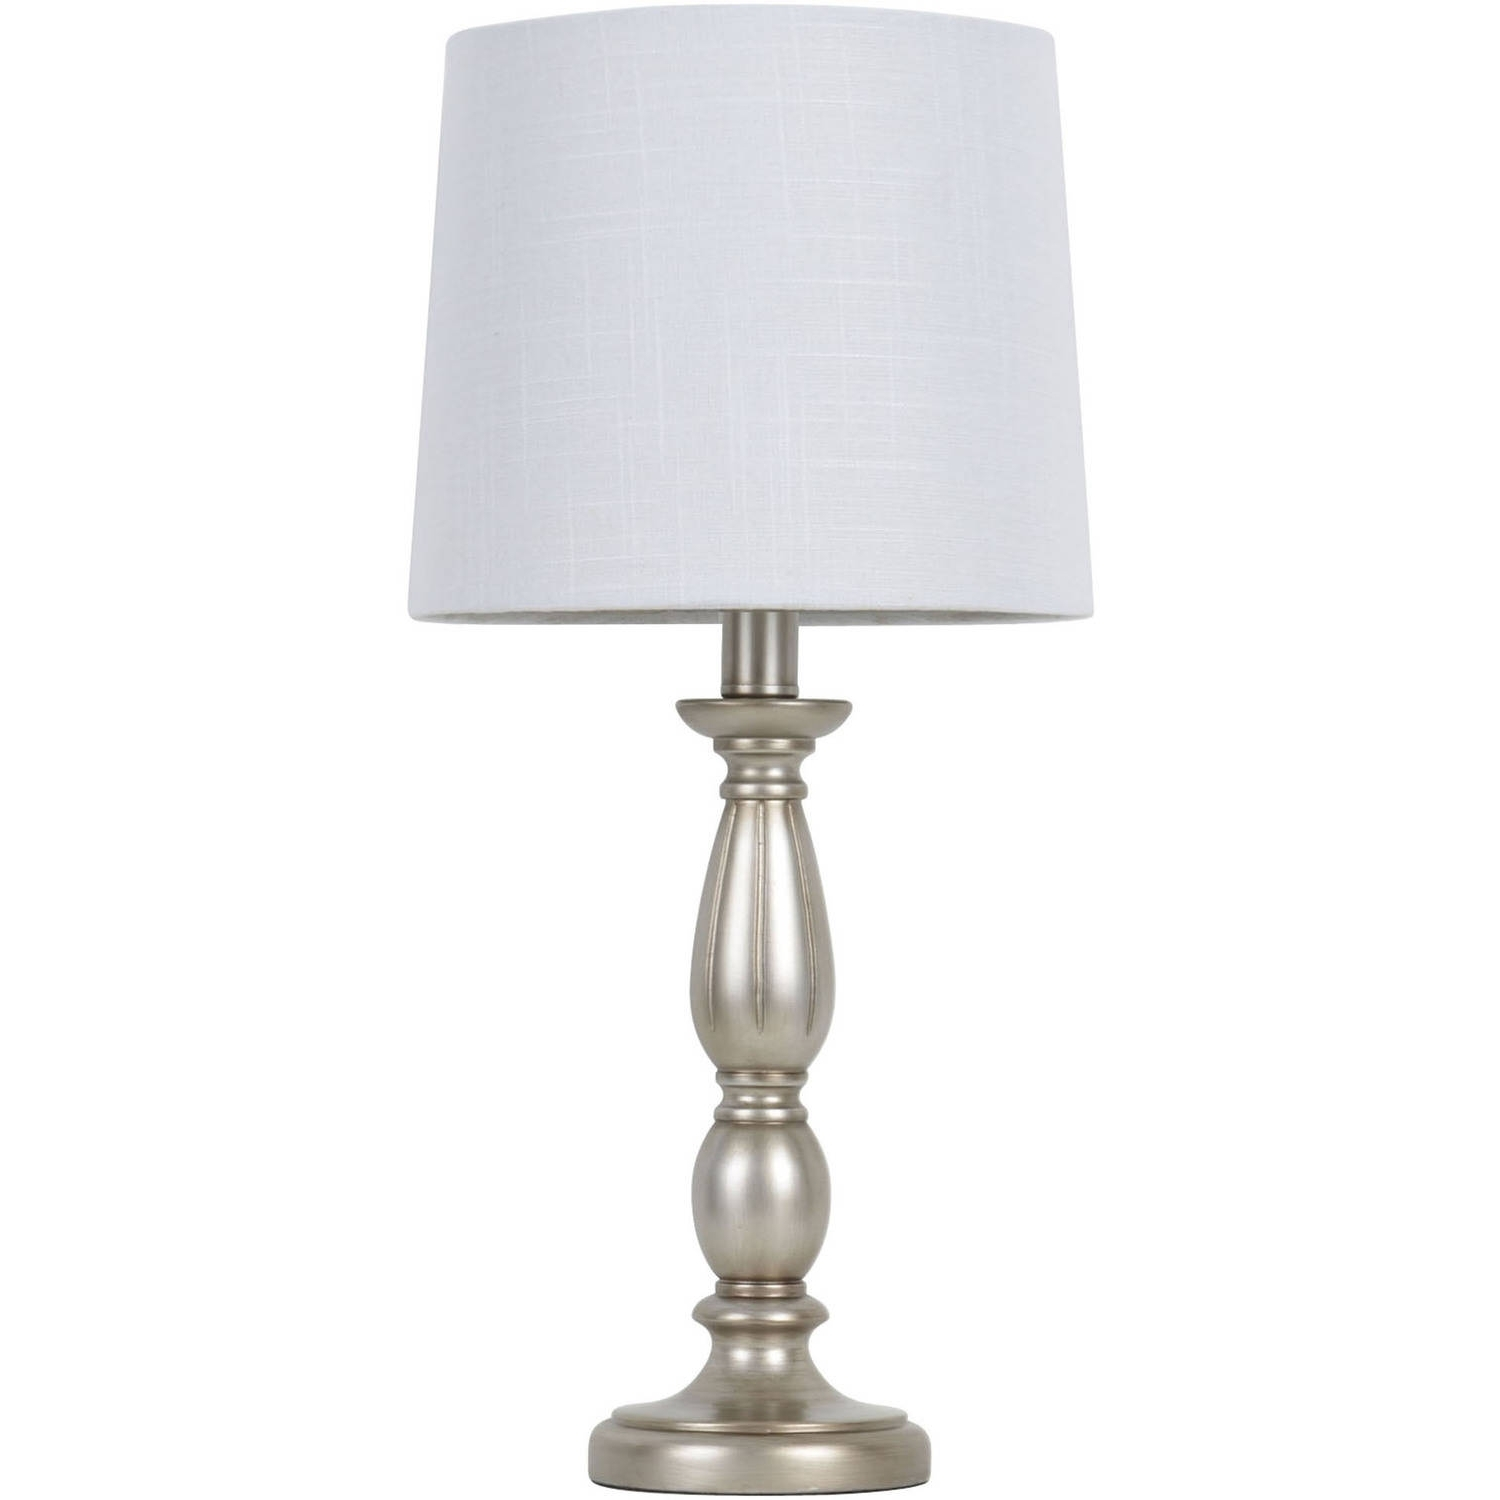 Most Up To Date Living Room Table Lamps At Home Depot For Table Lamps Tall Skinny Small Grey Bedroom Cute Desk Buffet Target (View 15 of 15)